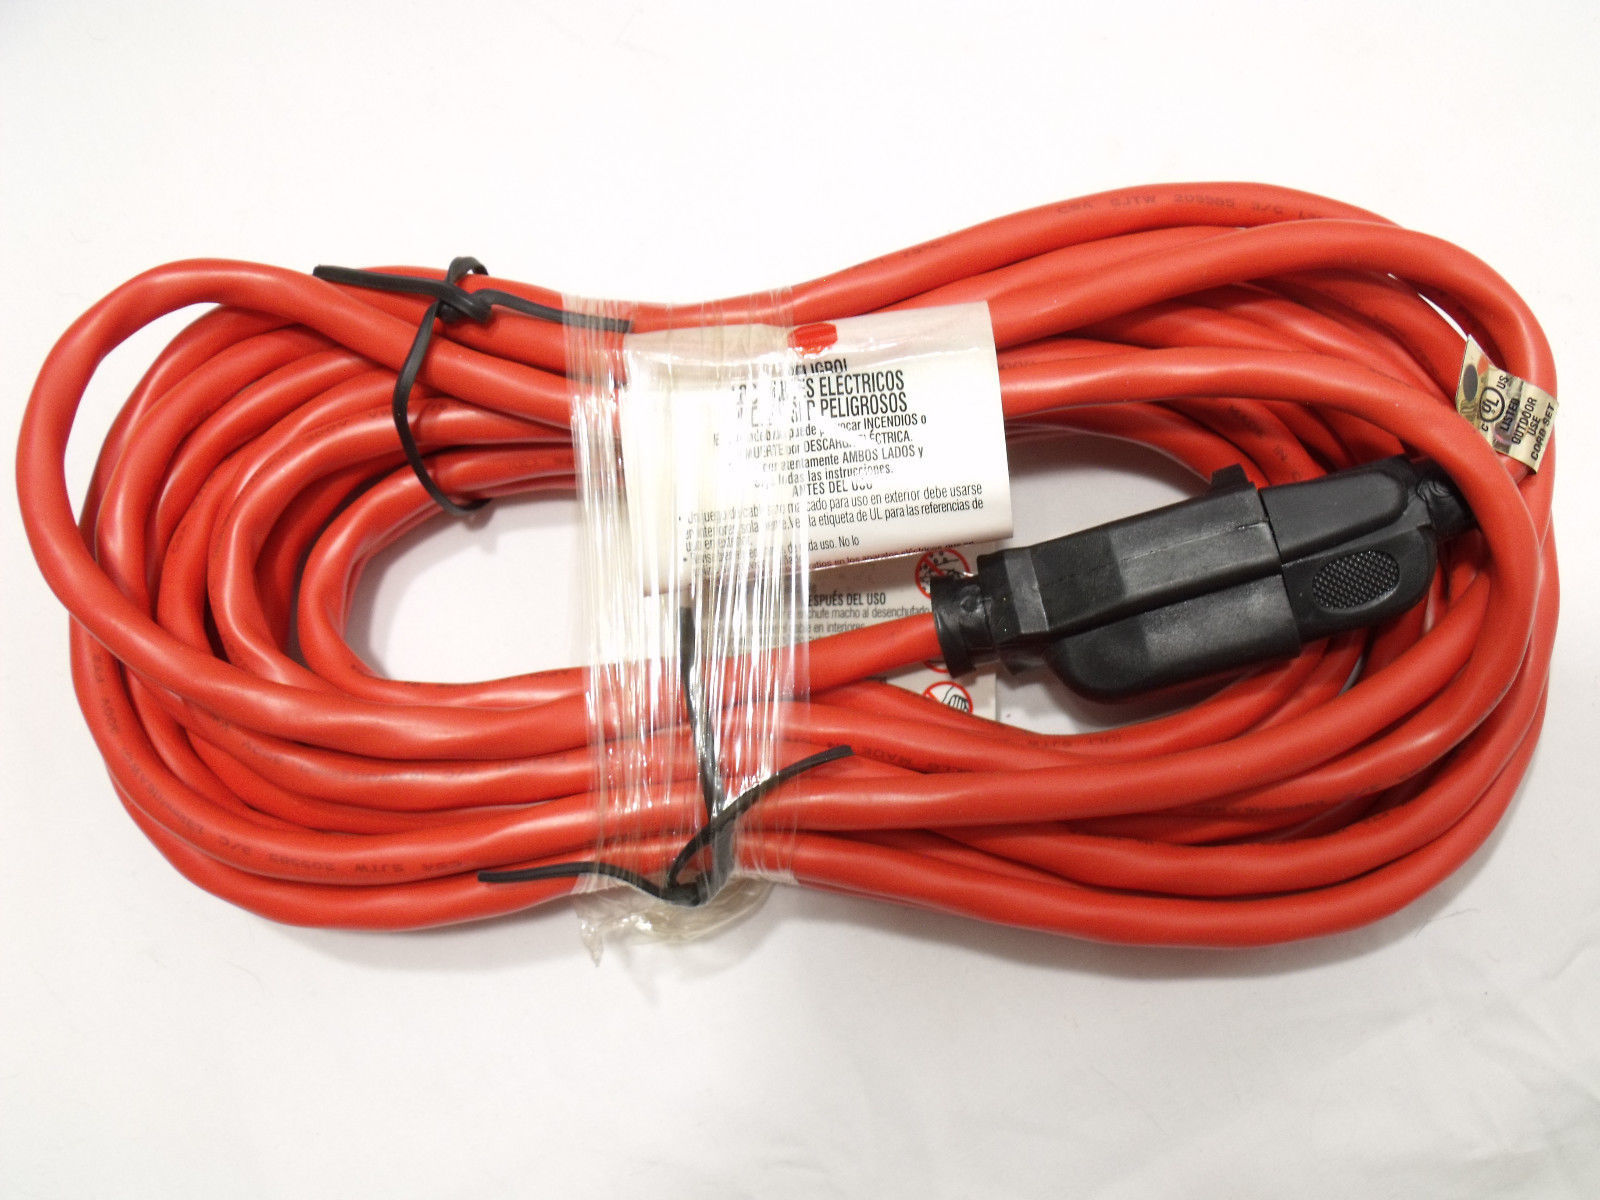 Epicord Rv Power Cord Adapter Plug 30 Amp Female To 15 Amp Male